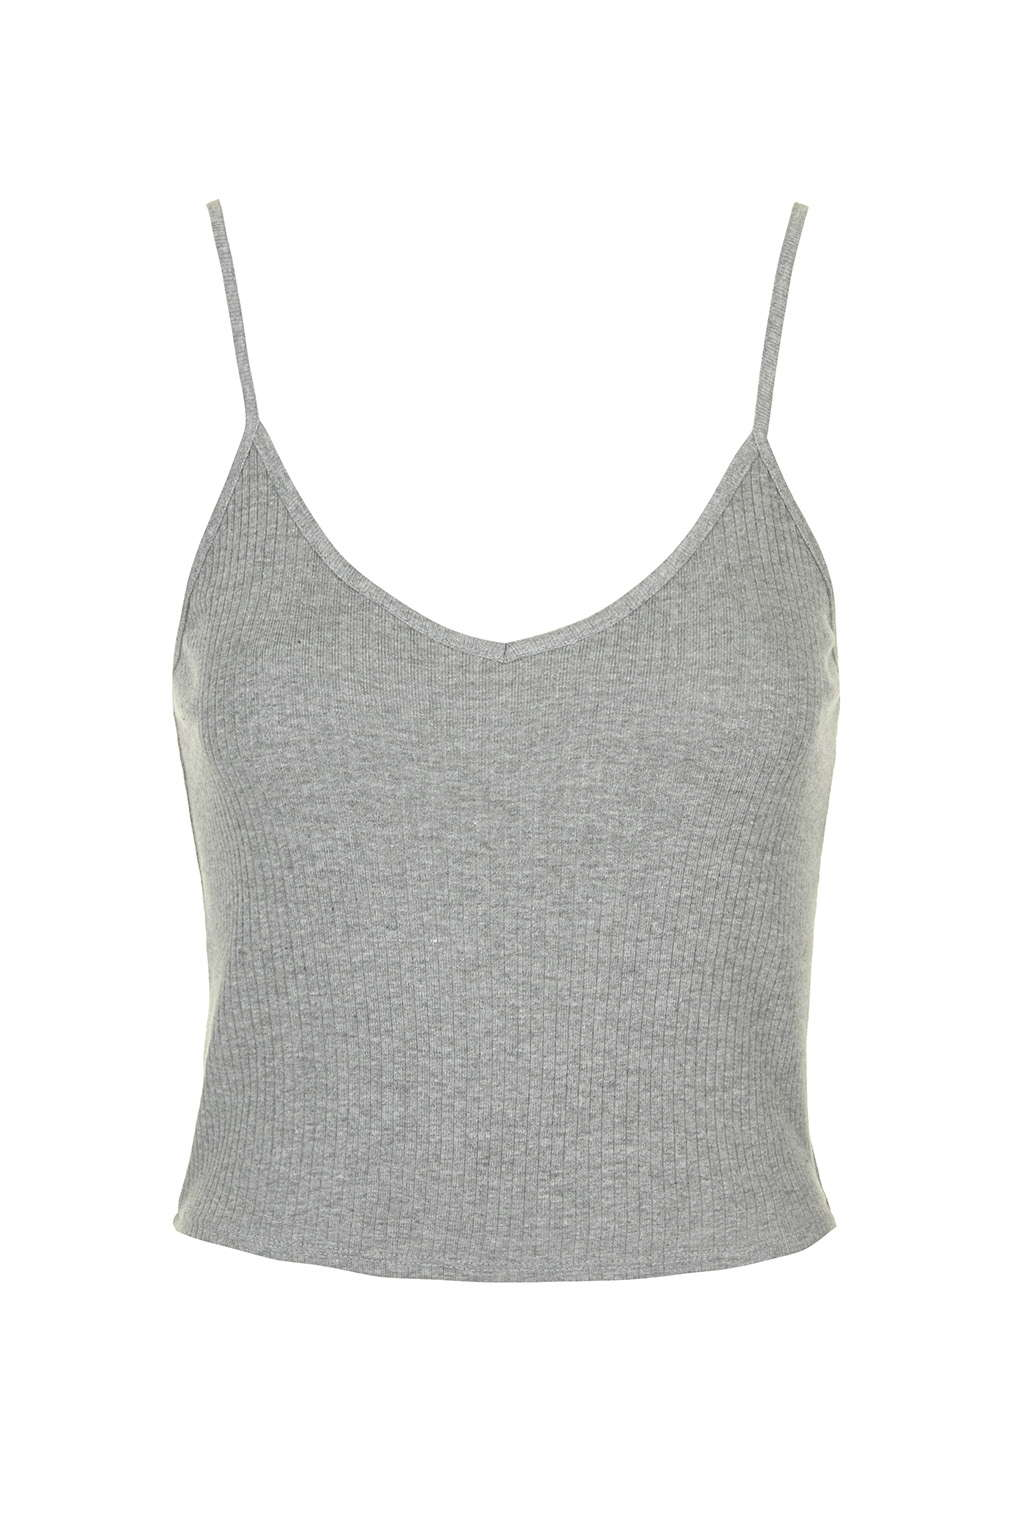 28226e33c68eb1 Ribbed Cropped Cami - Topshop